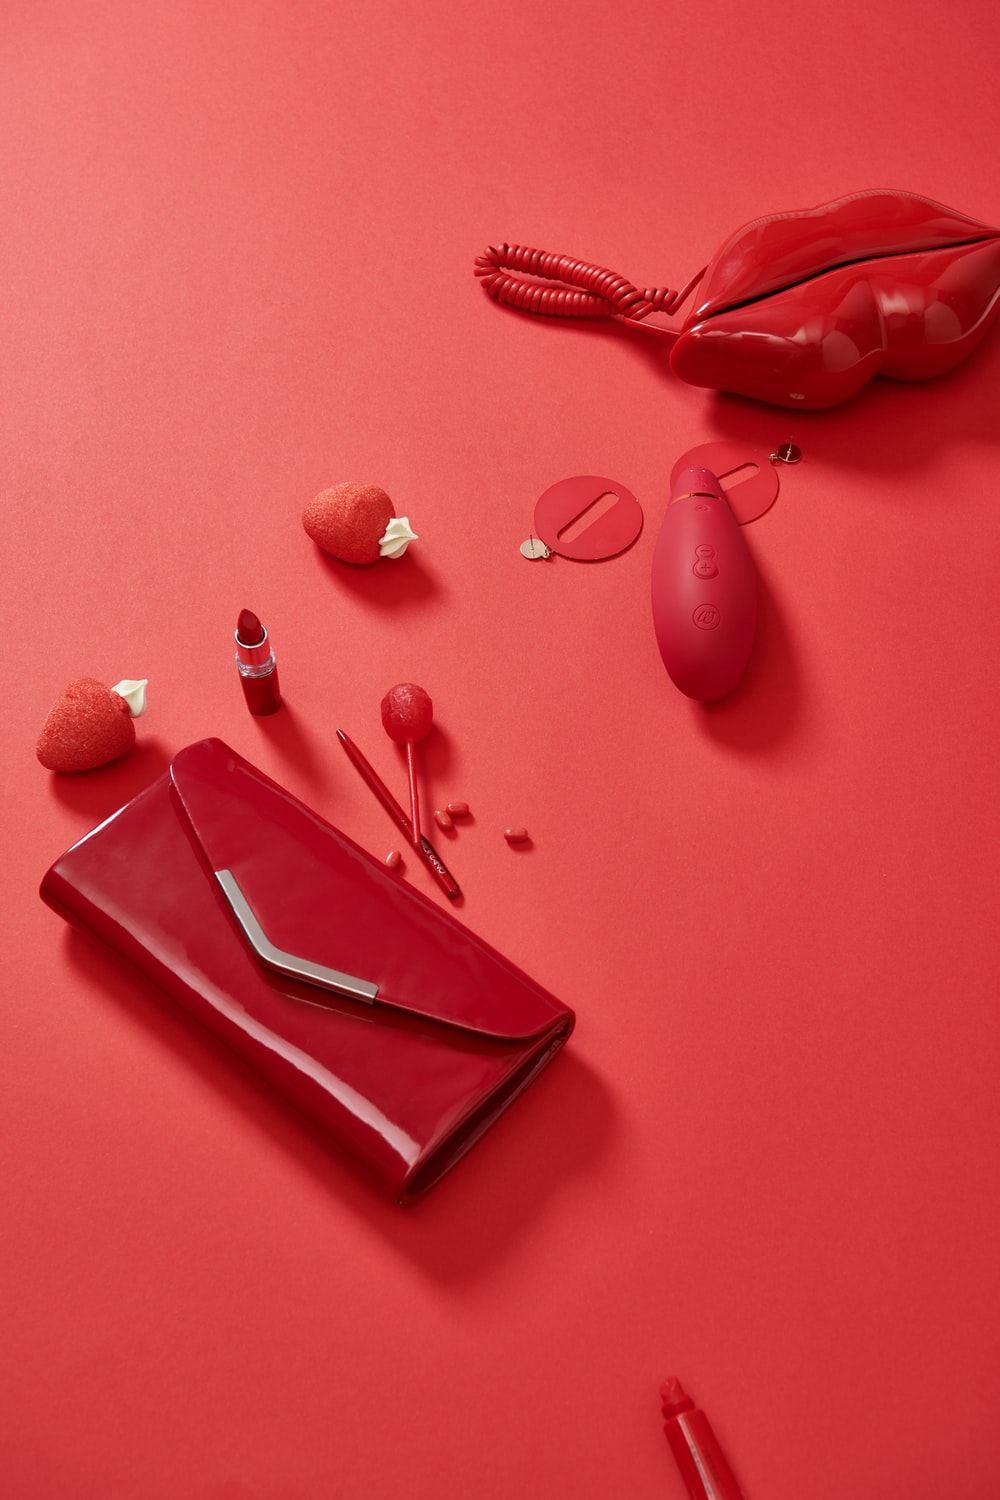 pink leather handbag beside red heart shaped ornament